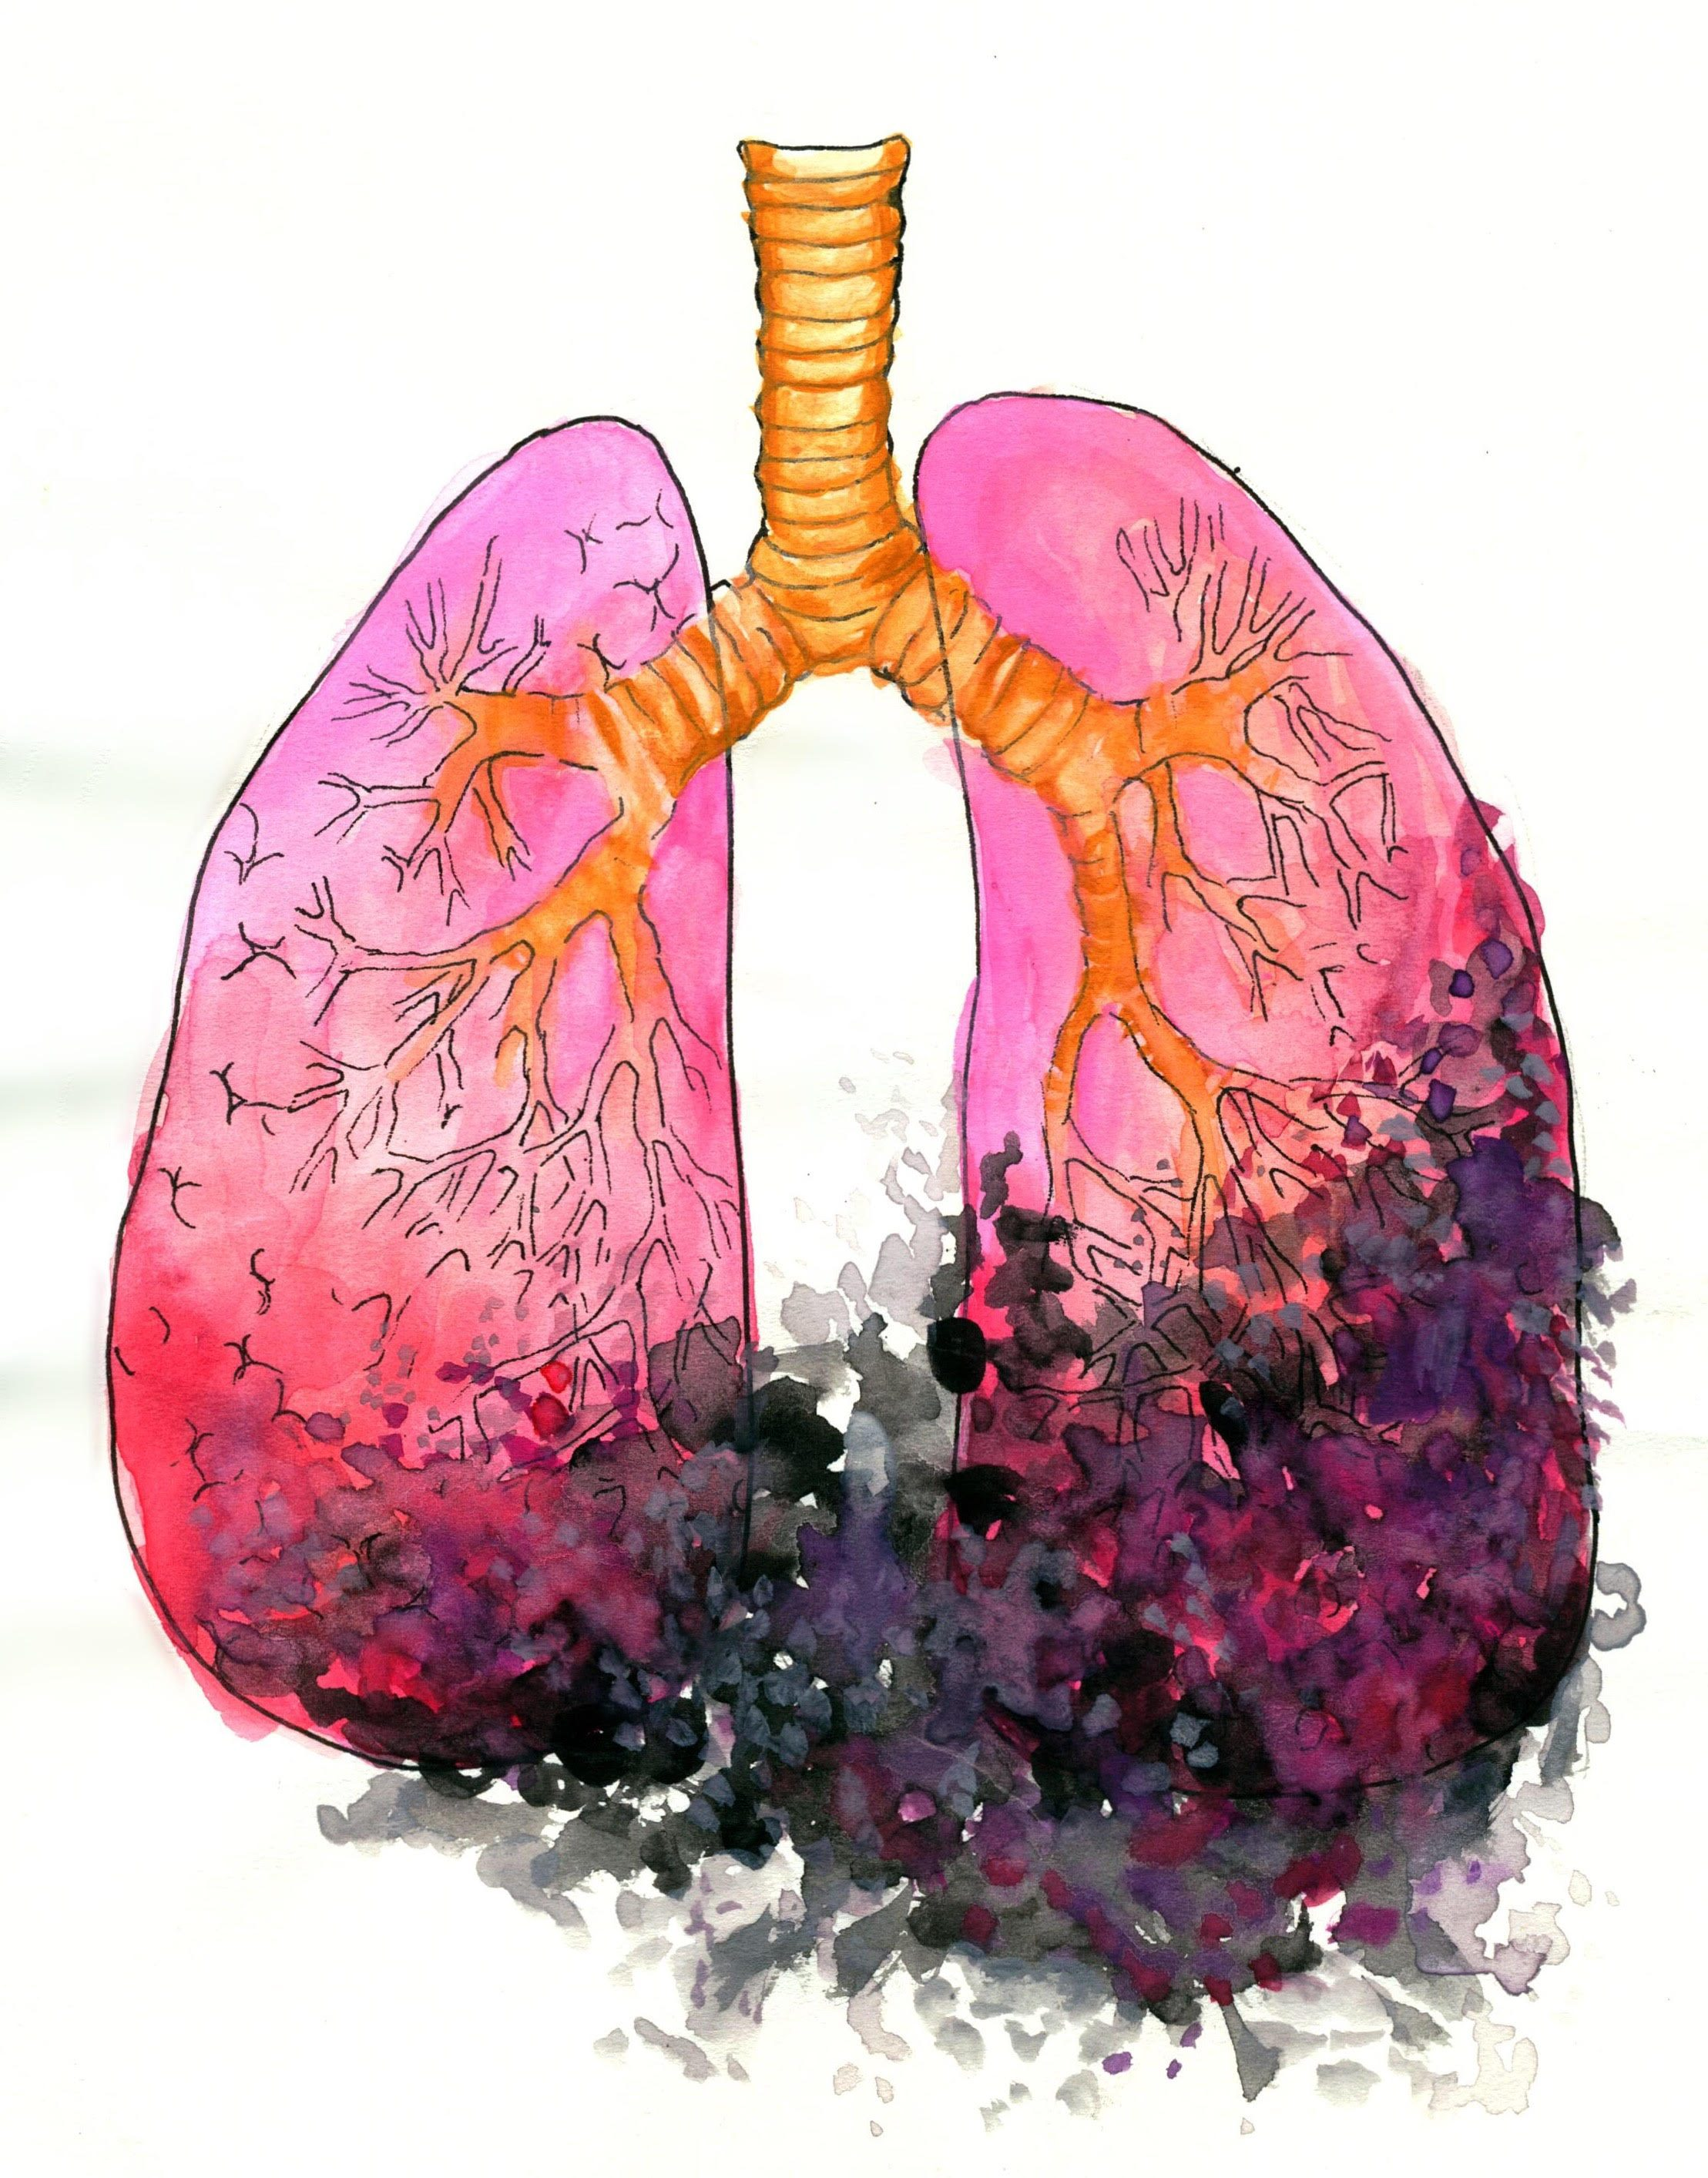 Modeling Lungs for a New Cure